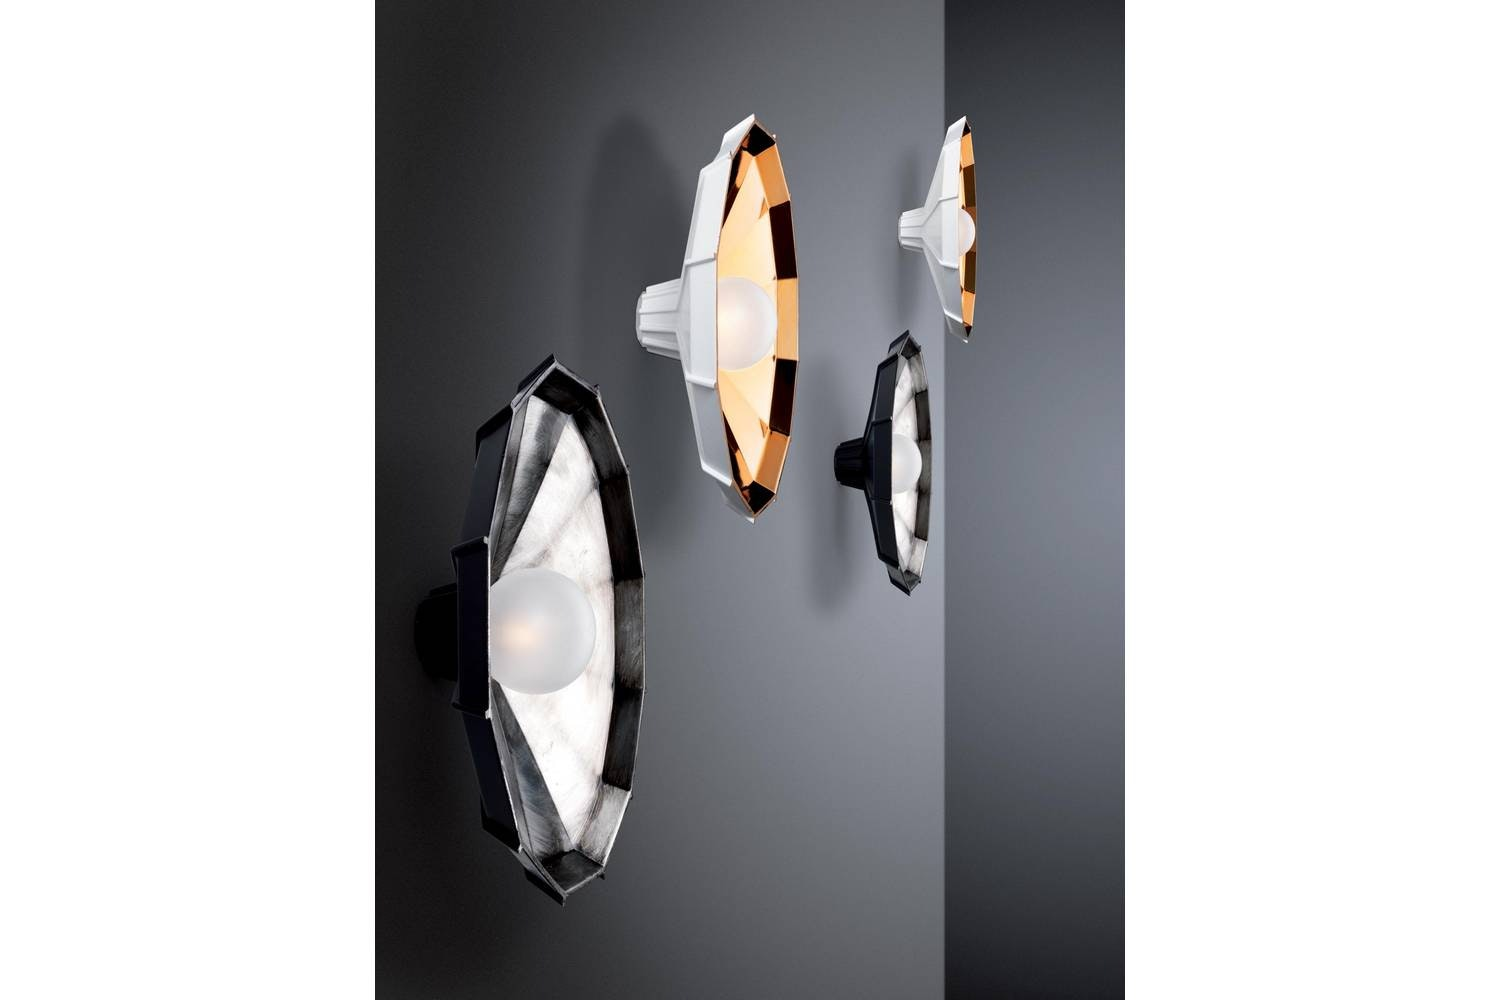 Mysterio Ceiling/Wall Lamp by Successful Living from DIESEL for Foscarini